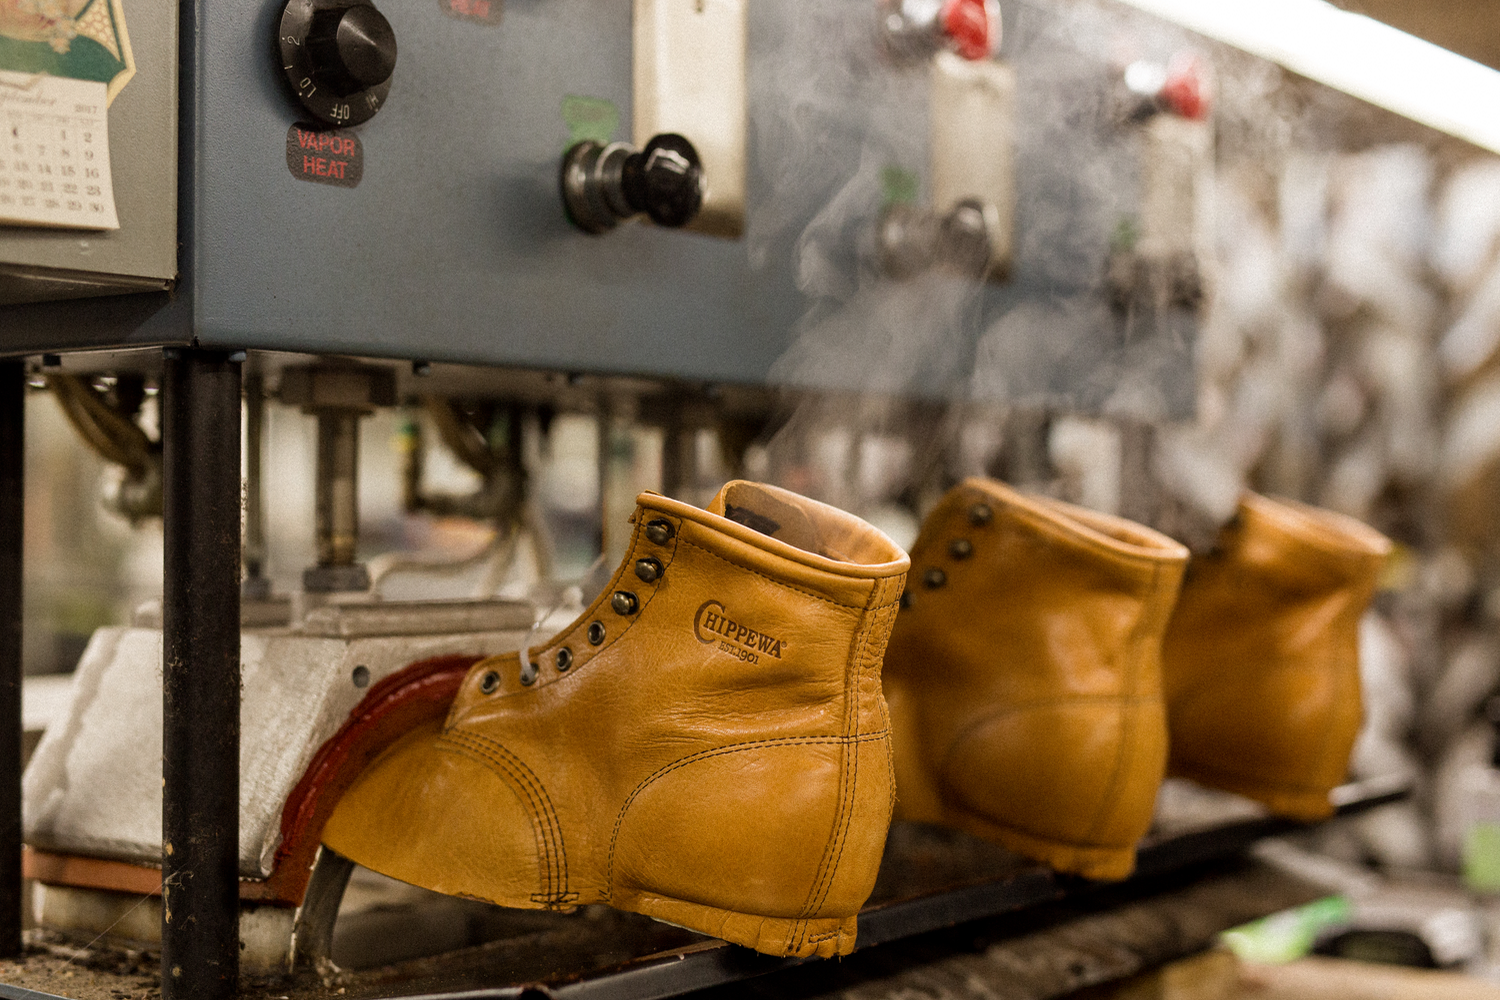 Original Chippewa The Story Of An American Boot Huckberry Cut Engineer Classic Shoes Iron Safety Boots Leather Dark Brown Our Steamin Hot Exclusive After Being Shaped